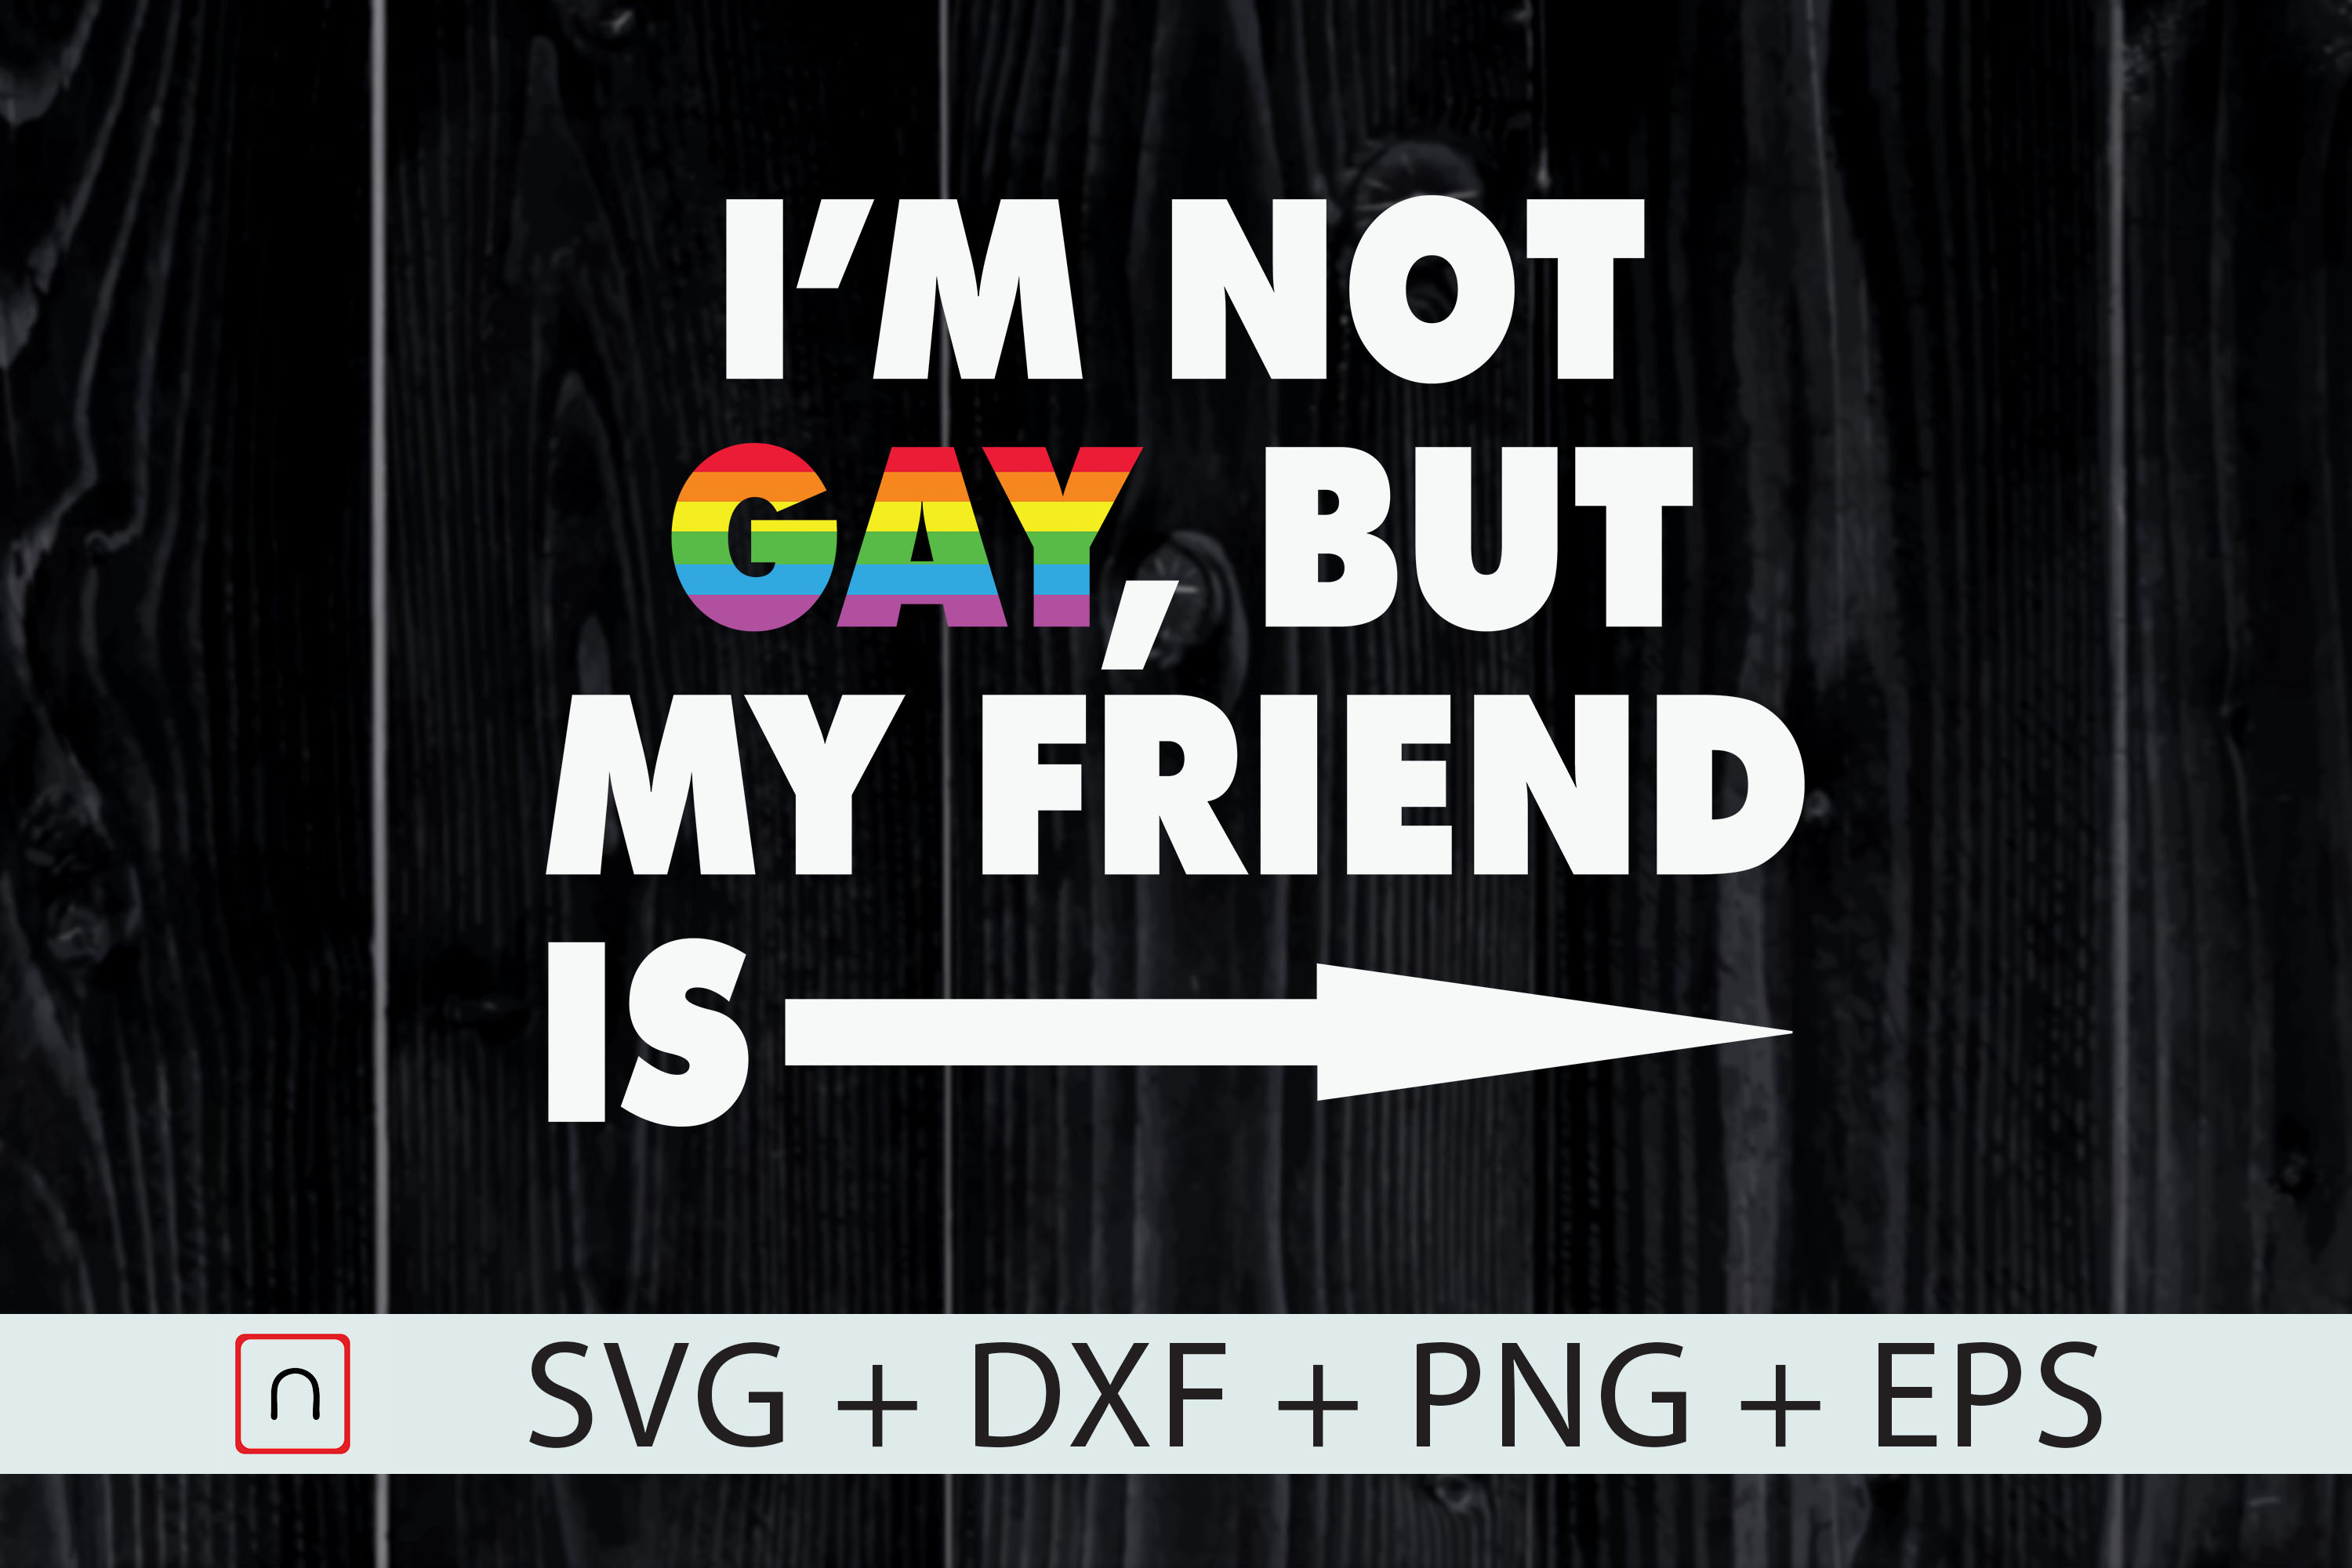 I M Not Gay But My Friend Is Lgbt Ally Graphic By Novalia